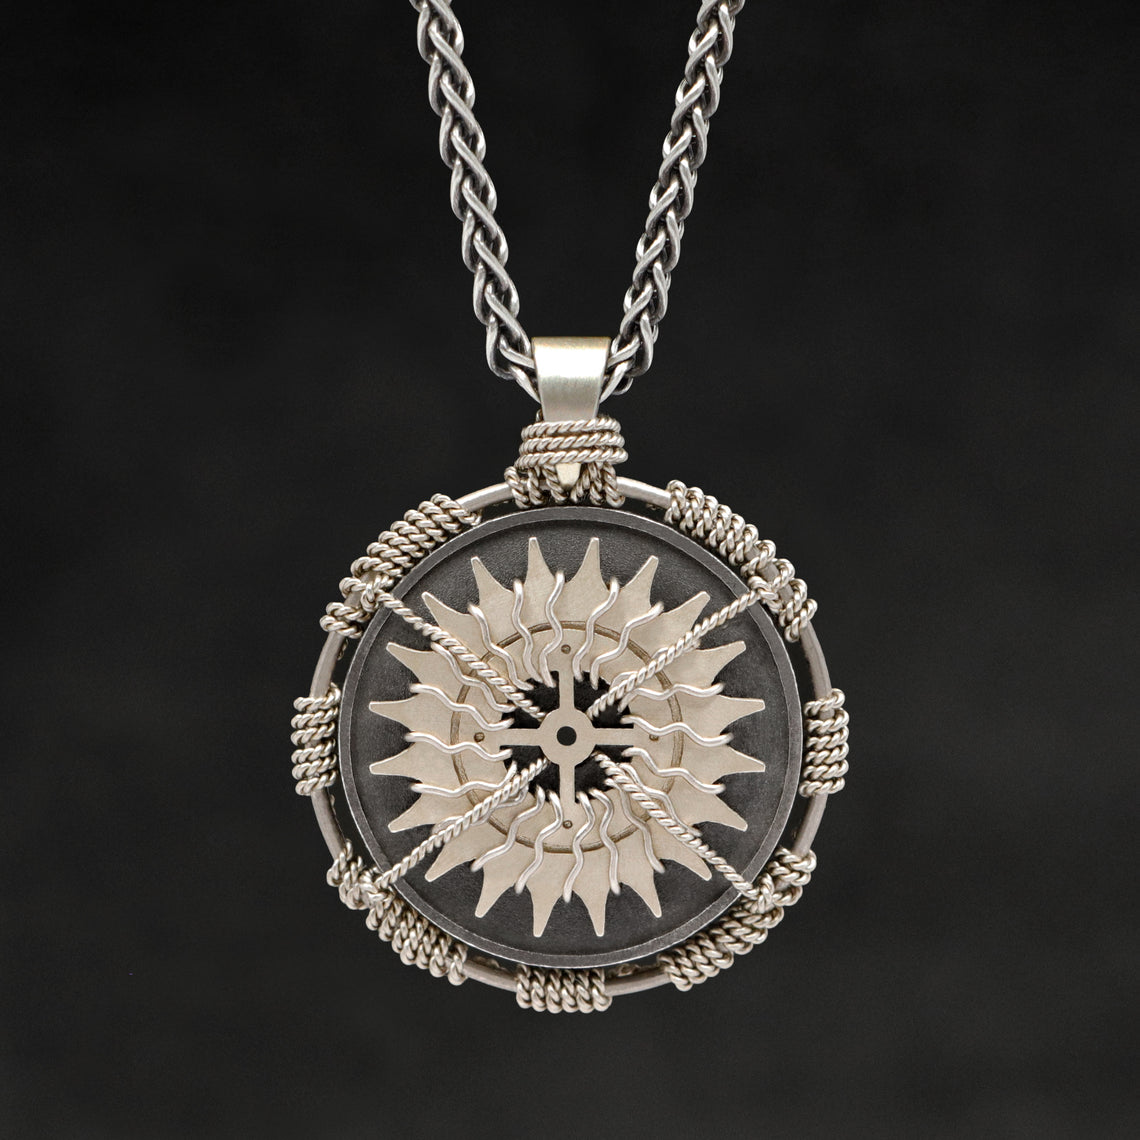 Hanging front view of 18K Palladium White Gold and Sterling Silver Sewn Gold Metal Compass pendant and chain with endless loop necklace featuring 20 pointed gear by Caps Brothers